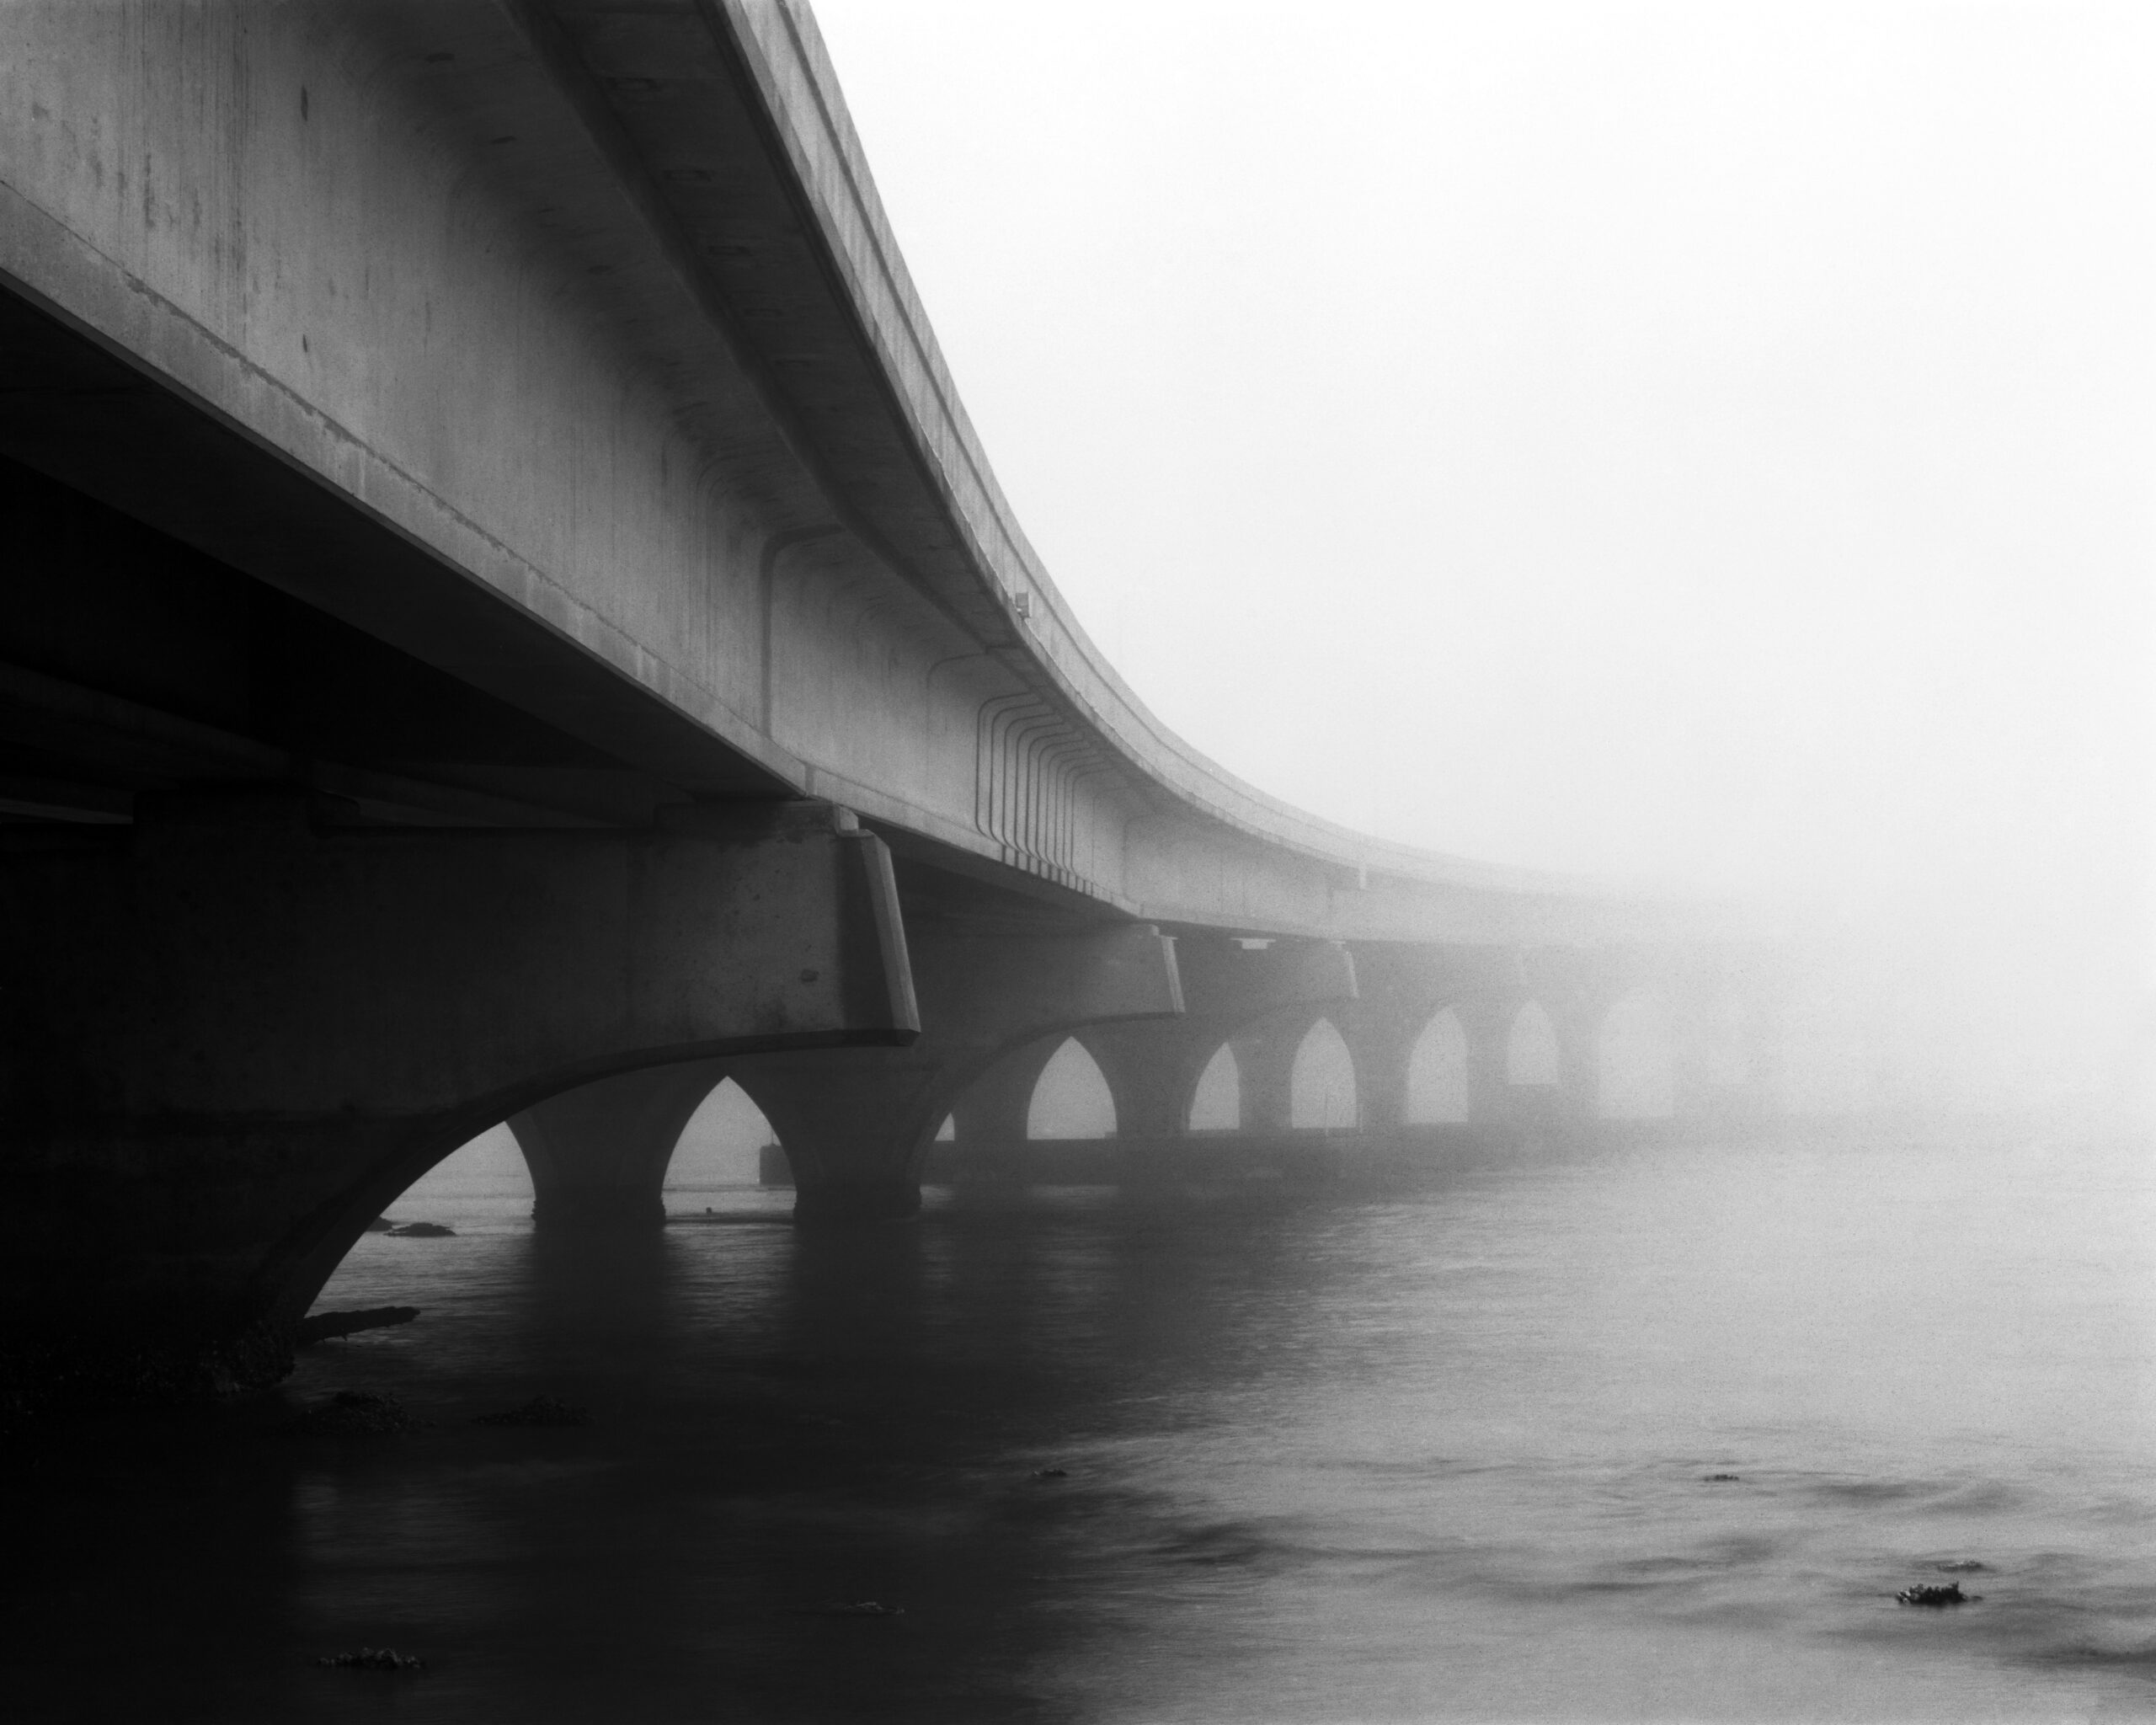 Fog, Francis and Mary Usina Bridge, St Augustine, FL. 2020